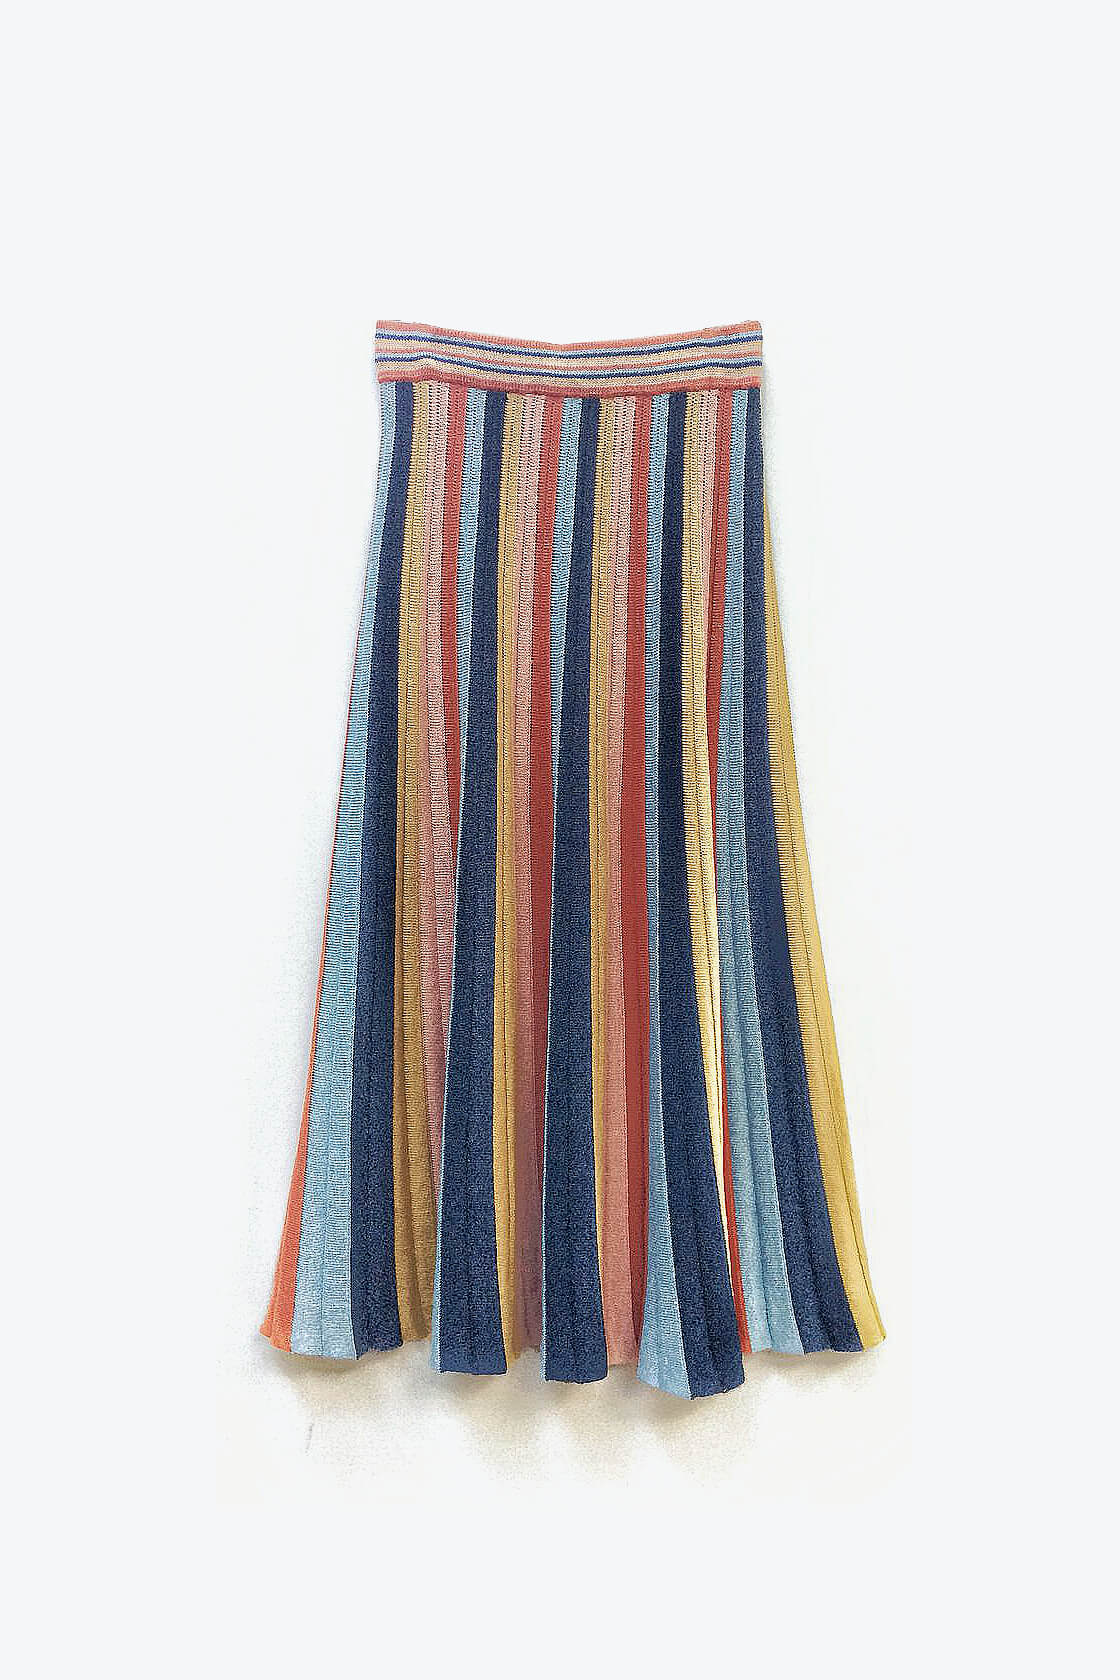 Boho Chic Knitted Maxi Skirt In Multi Color Stripes Denim